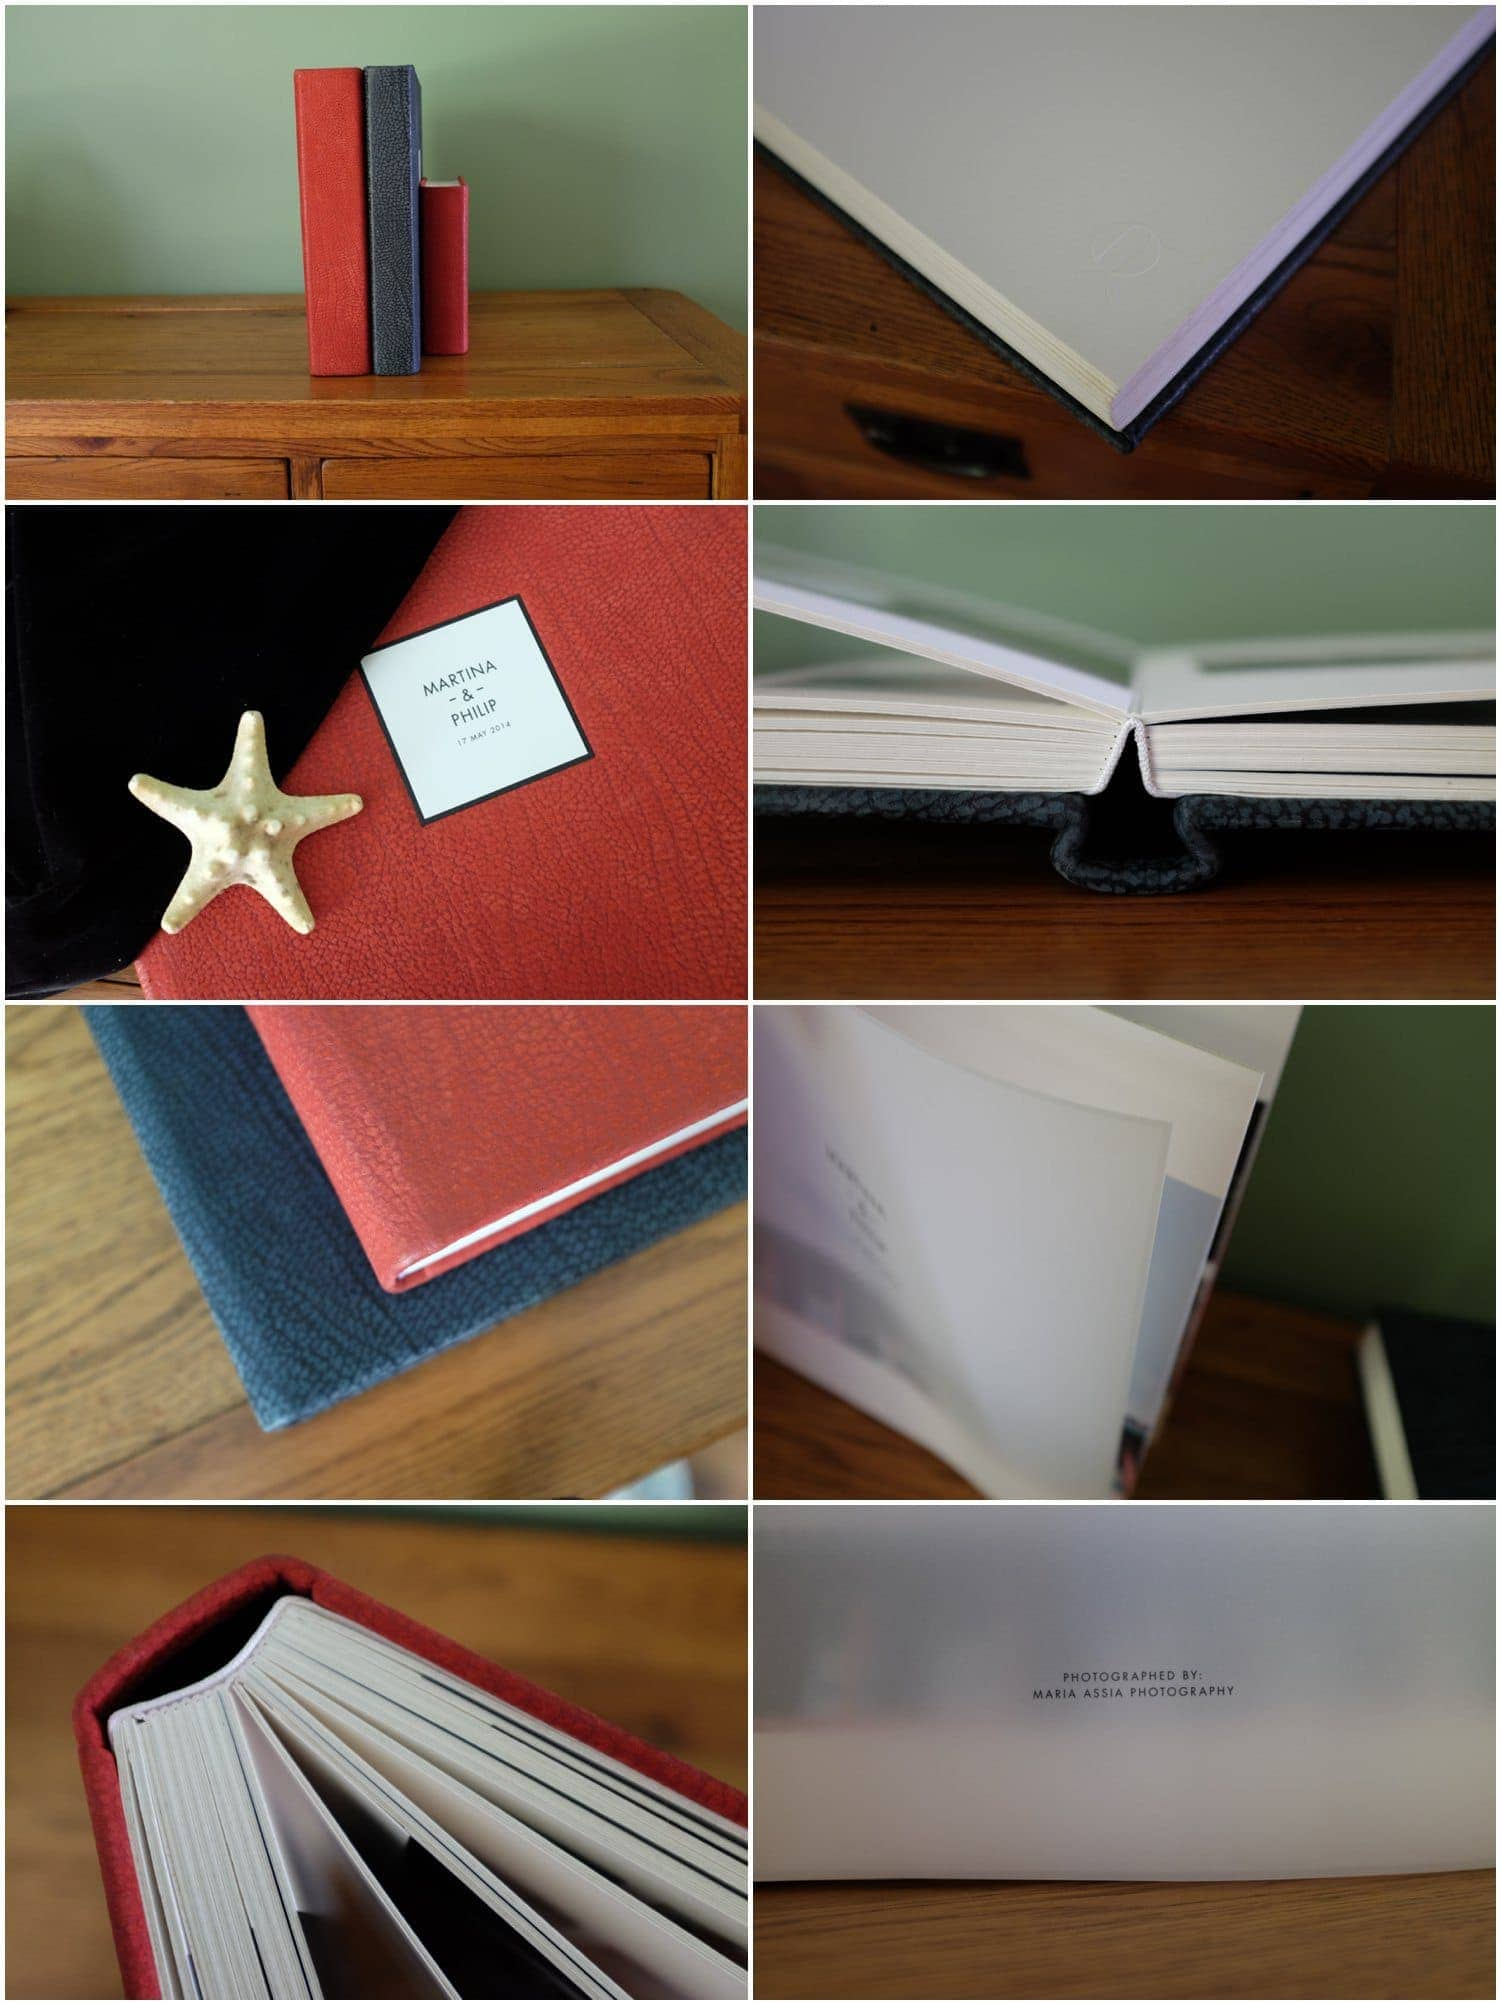 Maria Assia Photography traditional Queensberry matted Wedding Albums